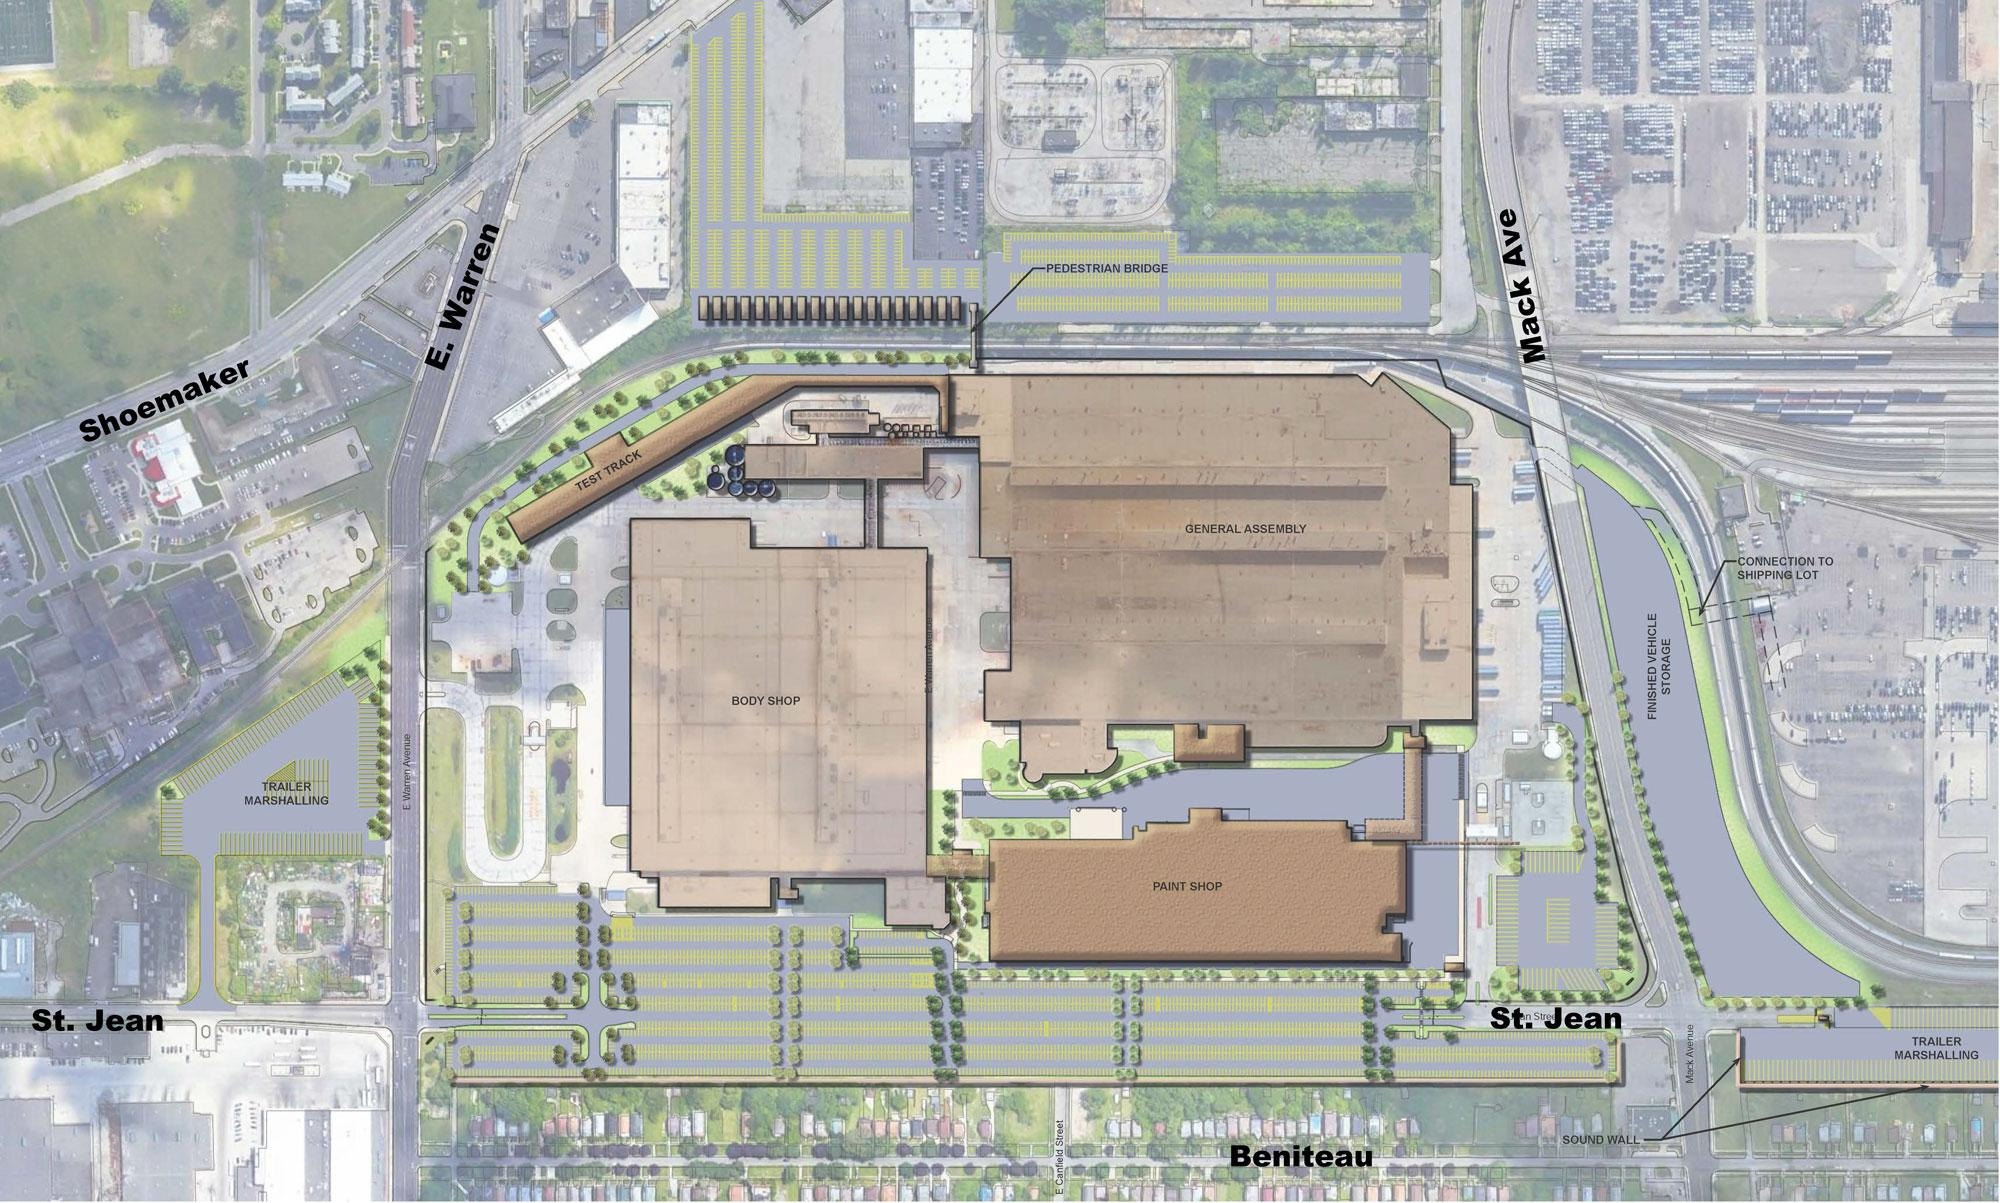 Fiat Chrysler's plans for the Jefferson North Plant Expansion. Beniteau St. can be seen to the south of the rendering.FCA